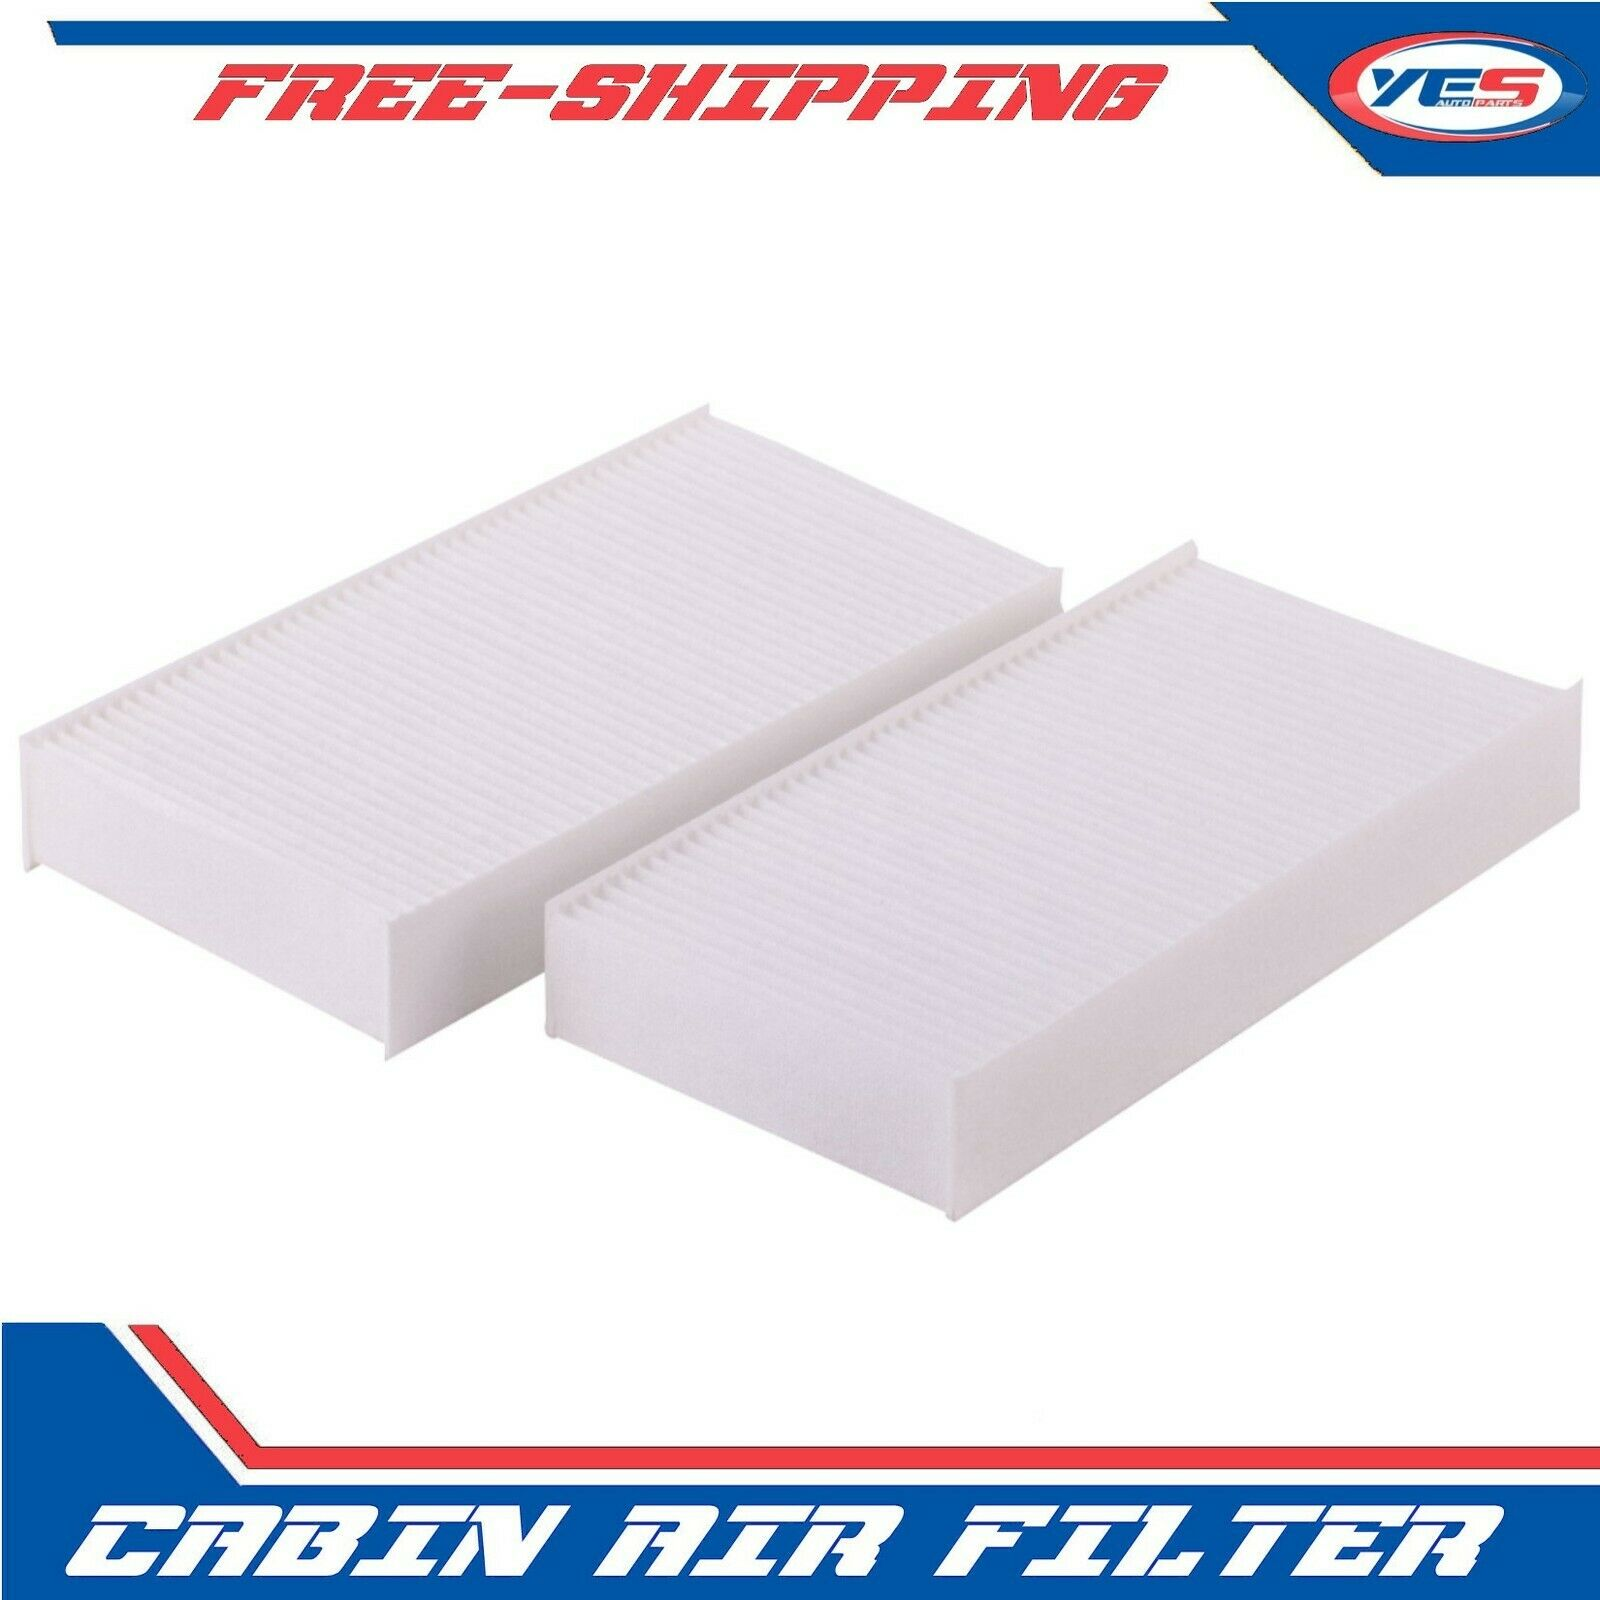 Premium Cabin Filter For 2002-2004 ACURA RSX 4 Cyl. 2.0L